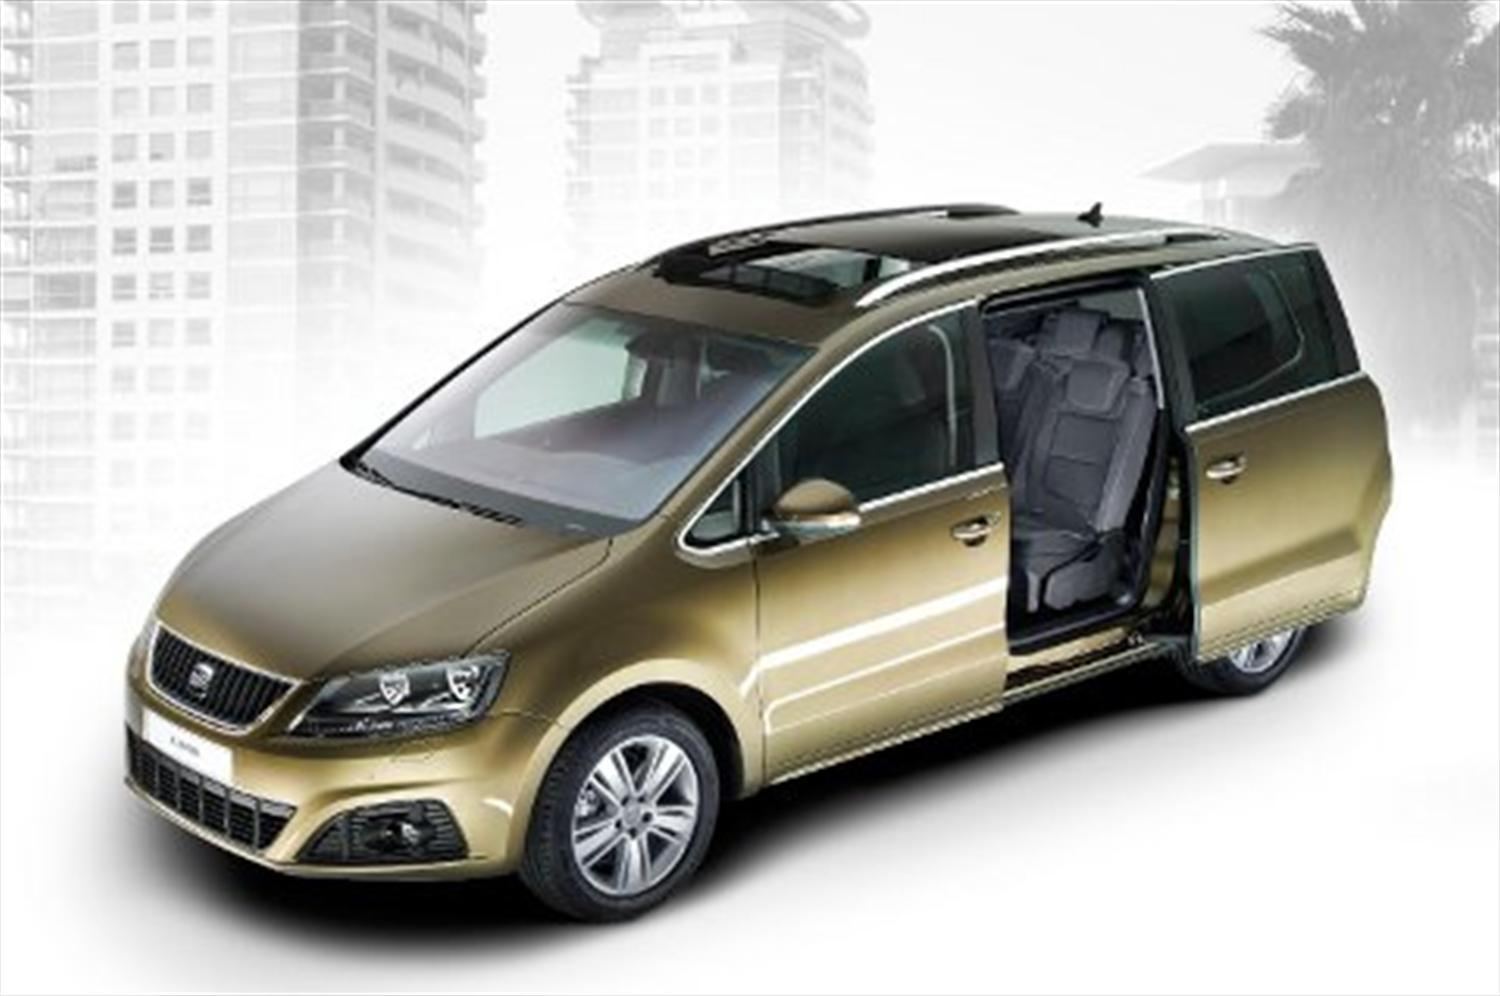 Best New 7 Seater Cars for 2013